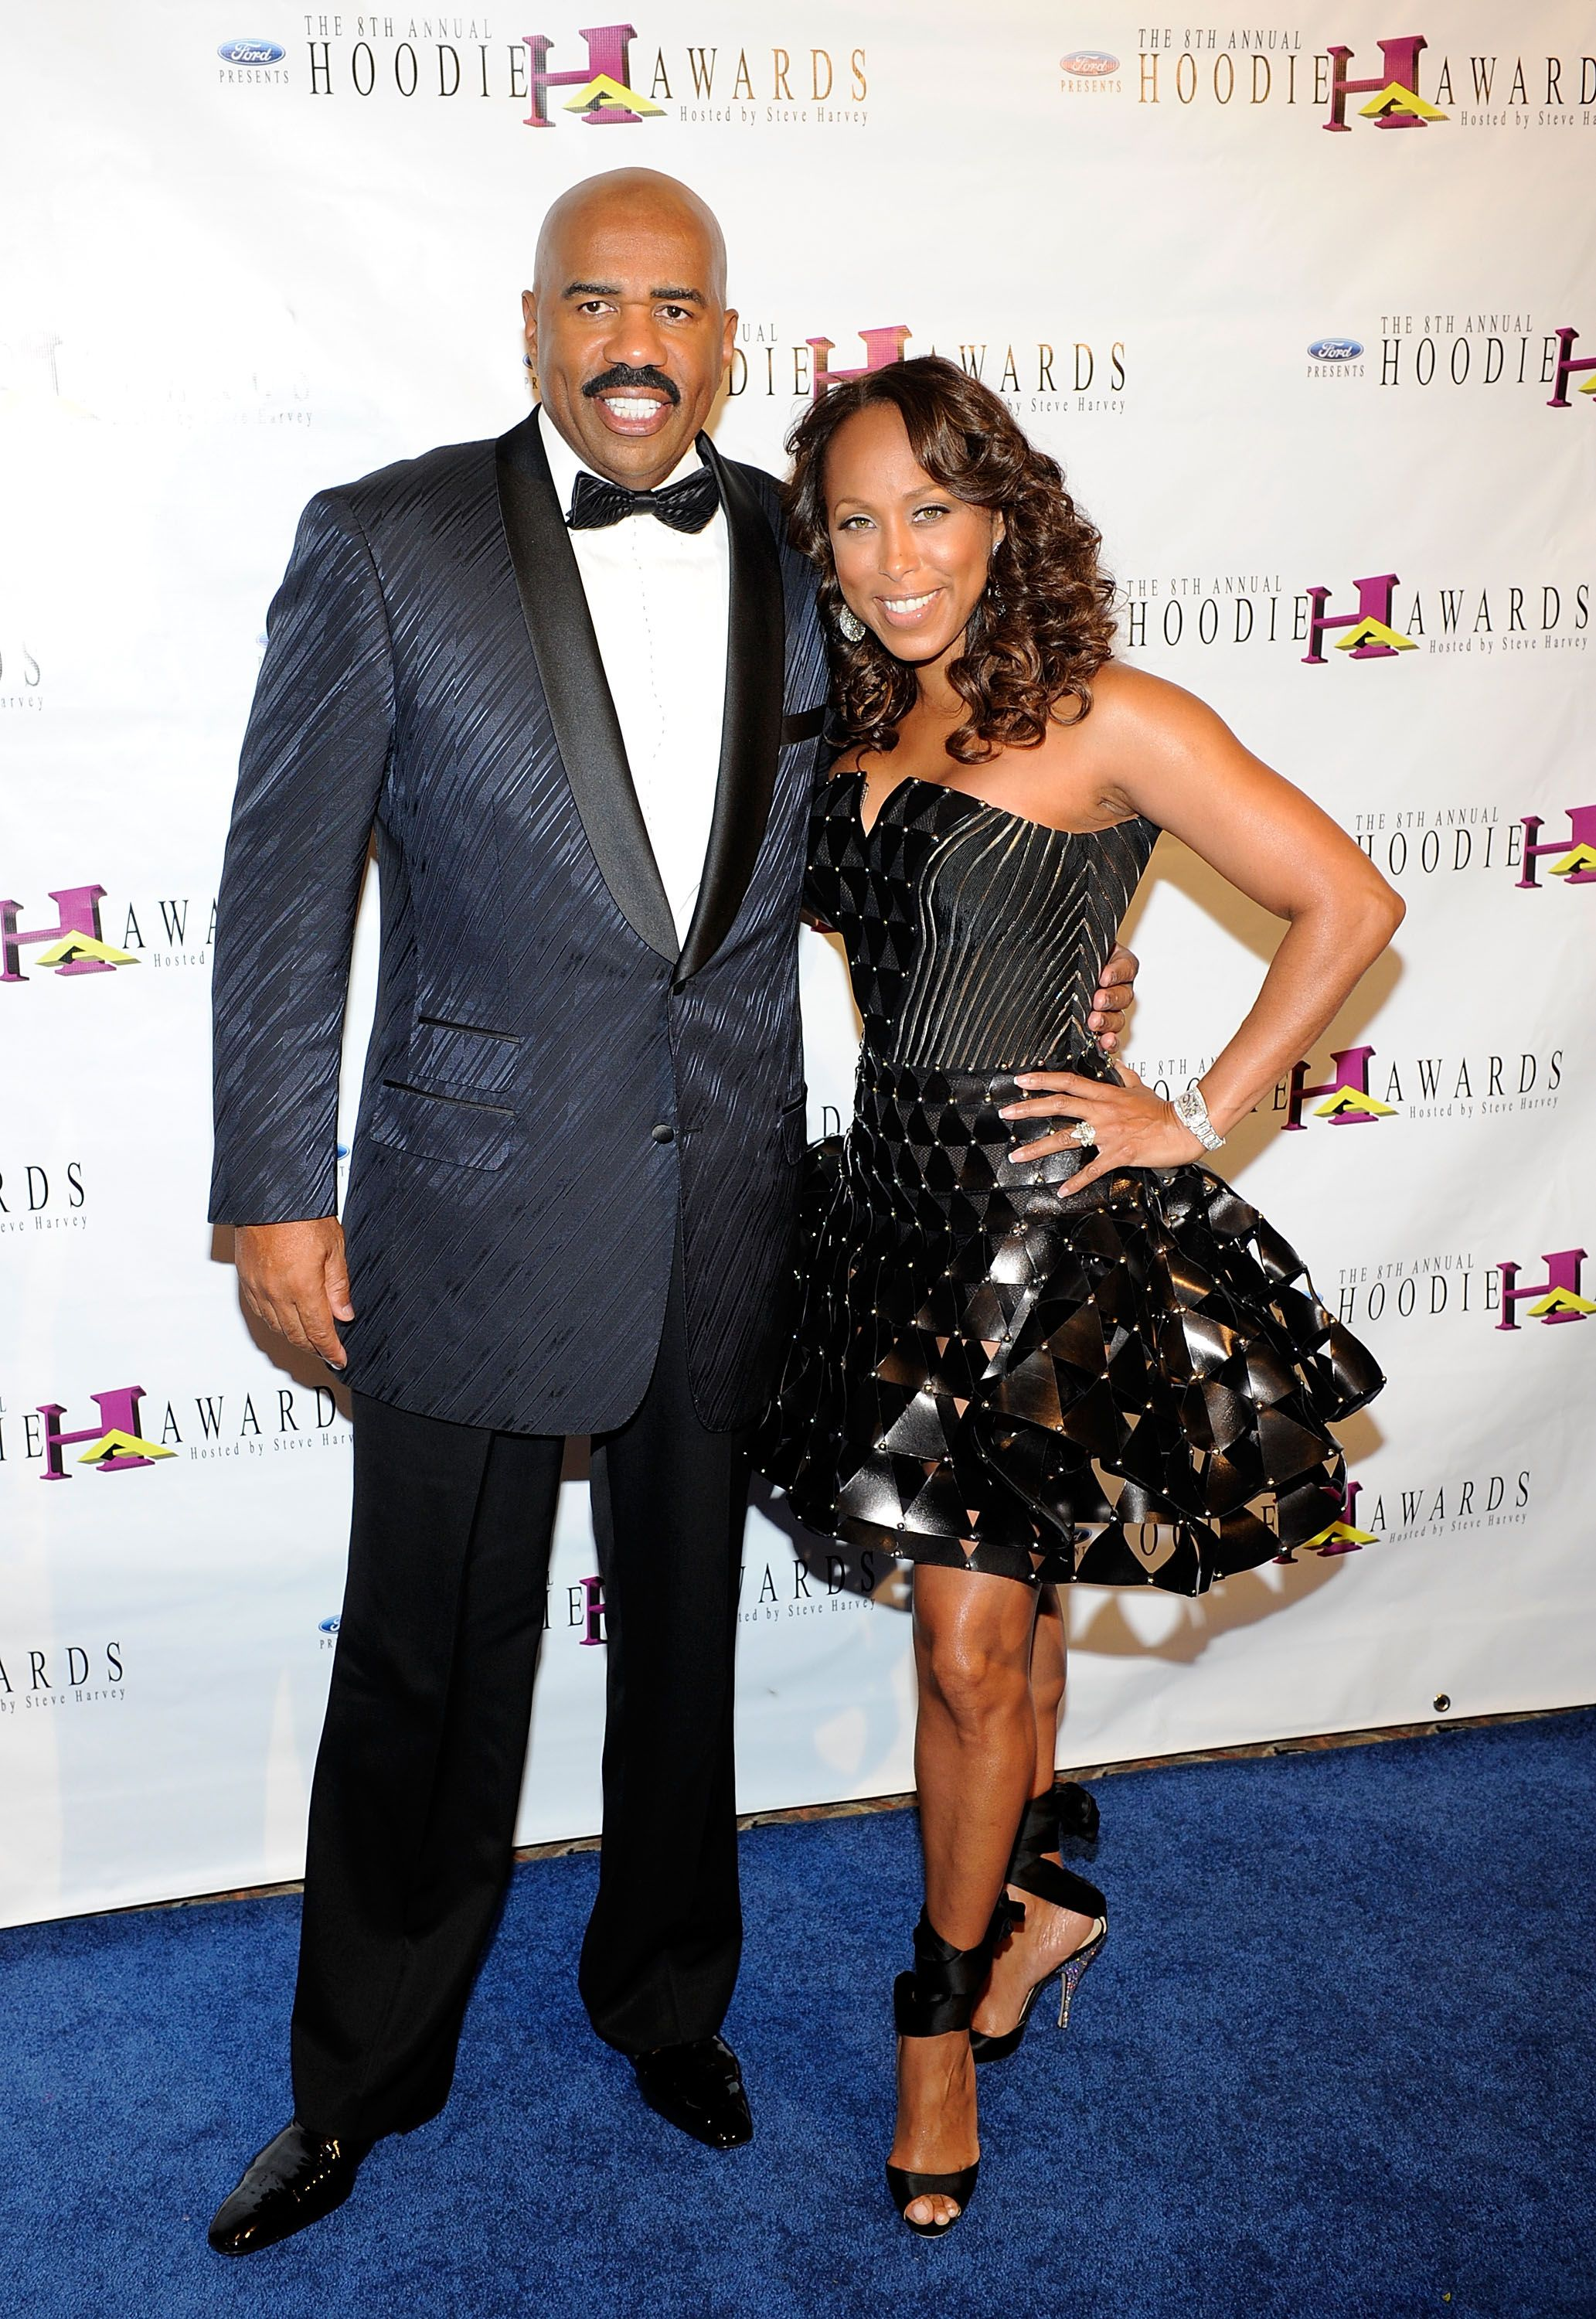 Steve Harvey and His Wife May Face Major Problems From